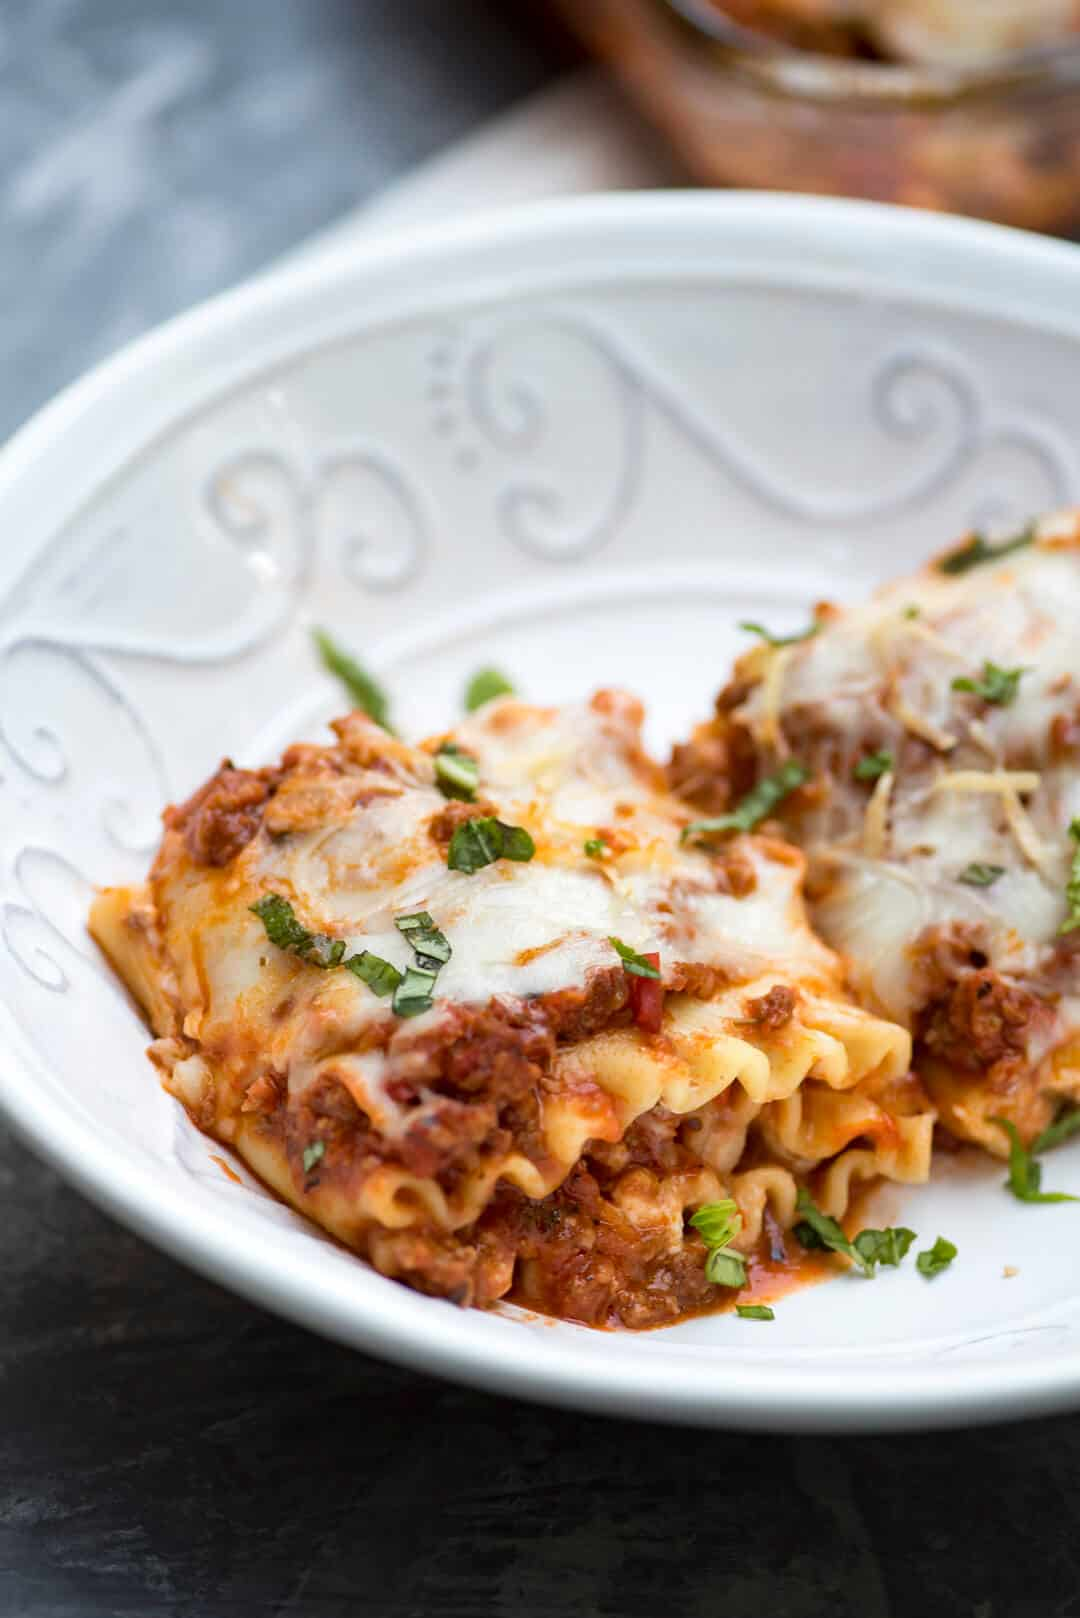 These Meaty Lasagna Roll-Ups are stuffed with a creamy ricotta mixture and a deliciously easy homemade meat sauce. A great make-ahead and freeze dish!